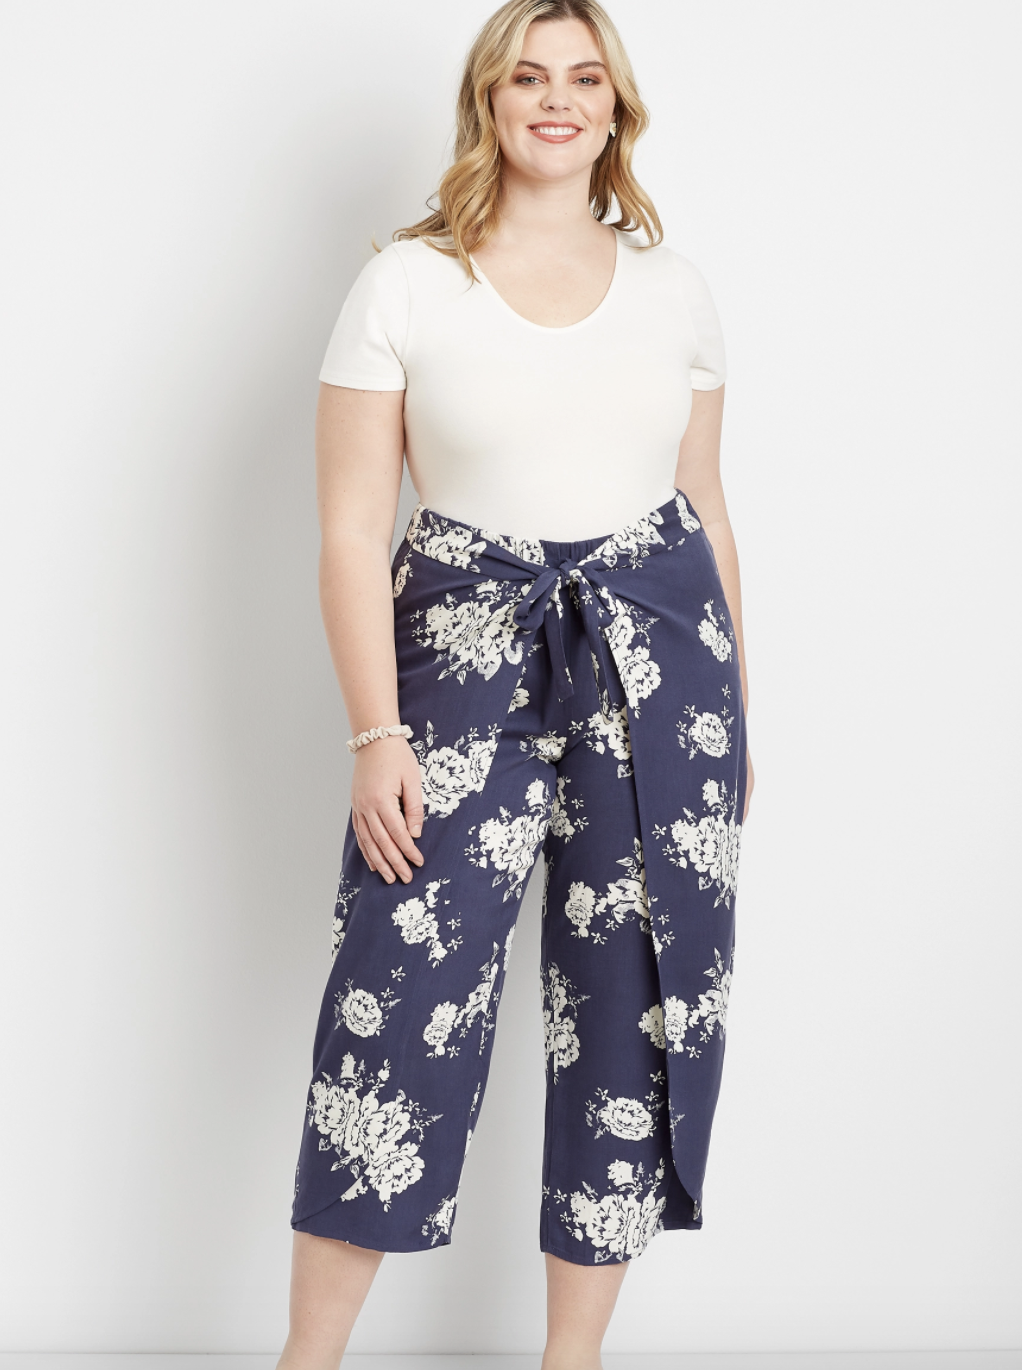 plus size model wearing the navy floral flyaway pants with a white tee